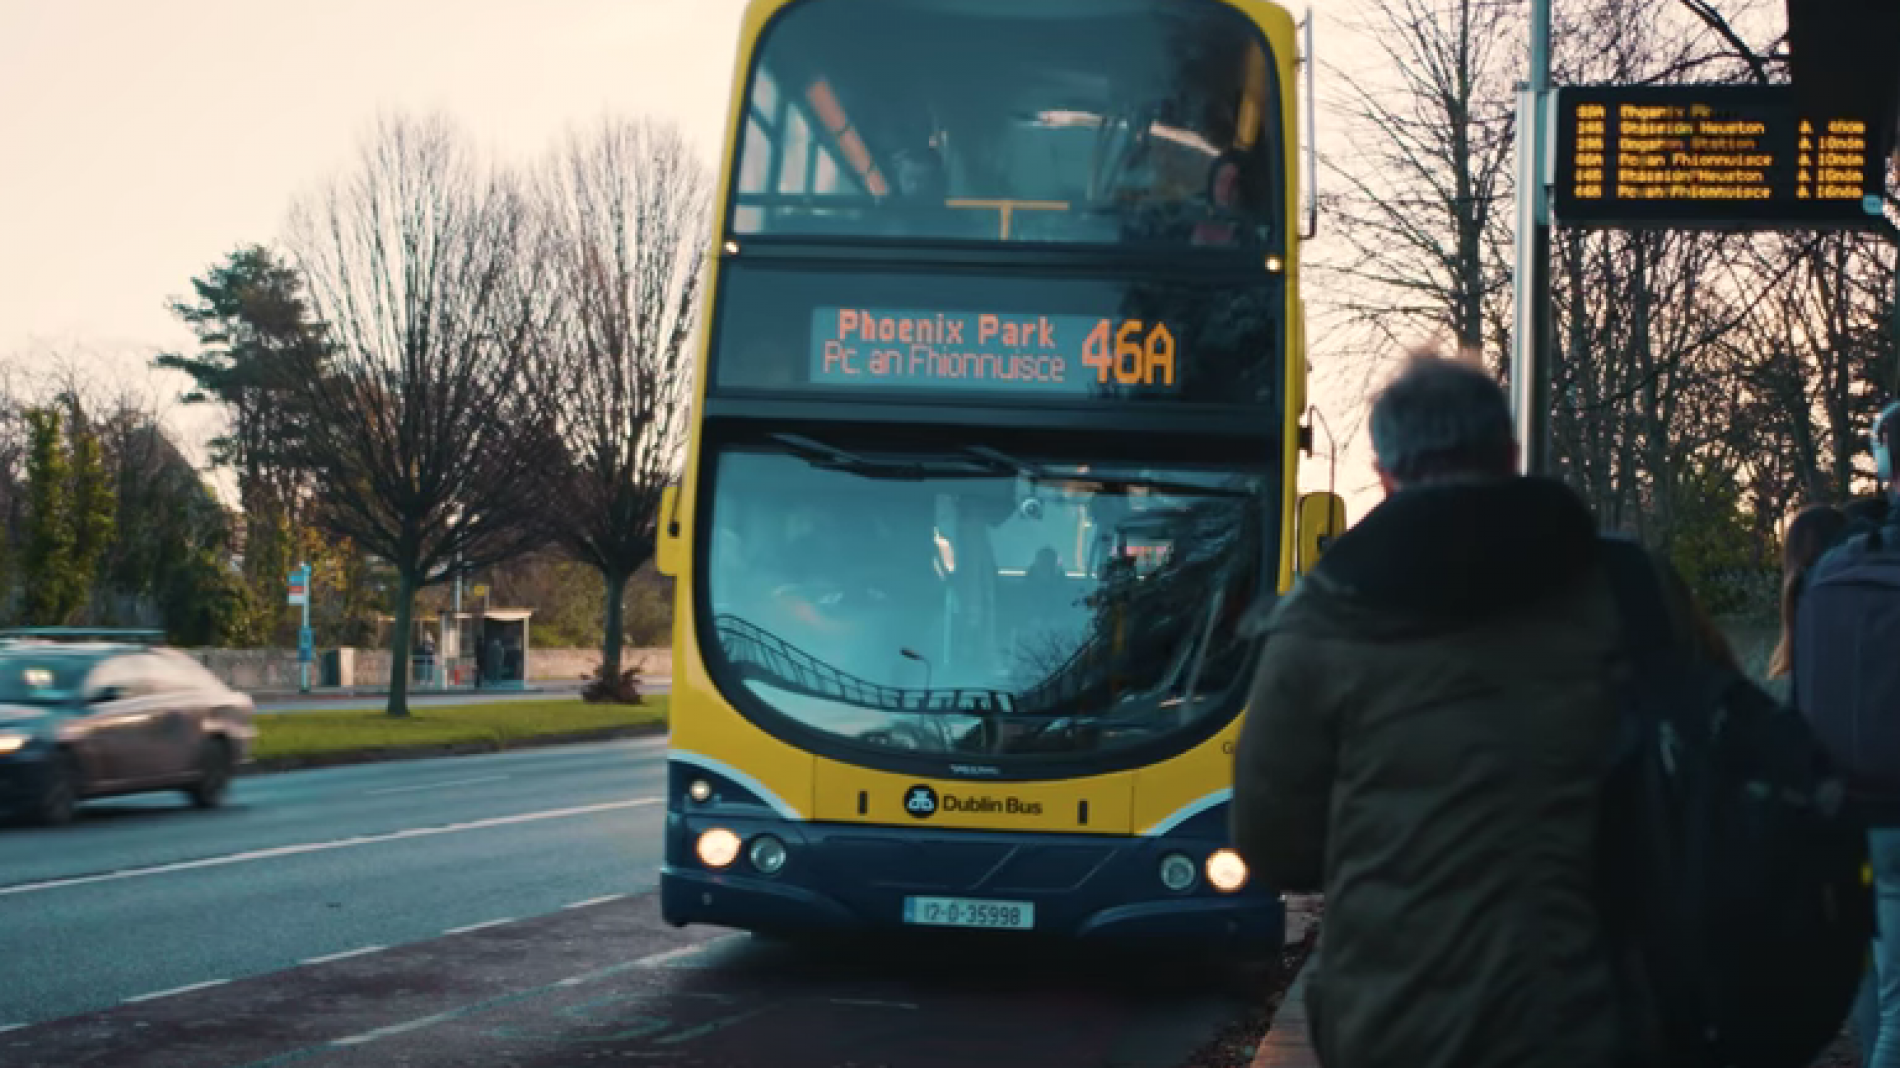 A Dublin Bus pulling in at a stop